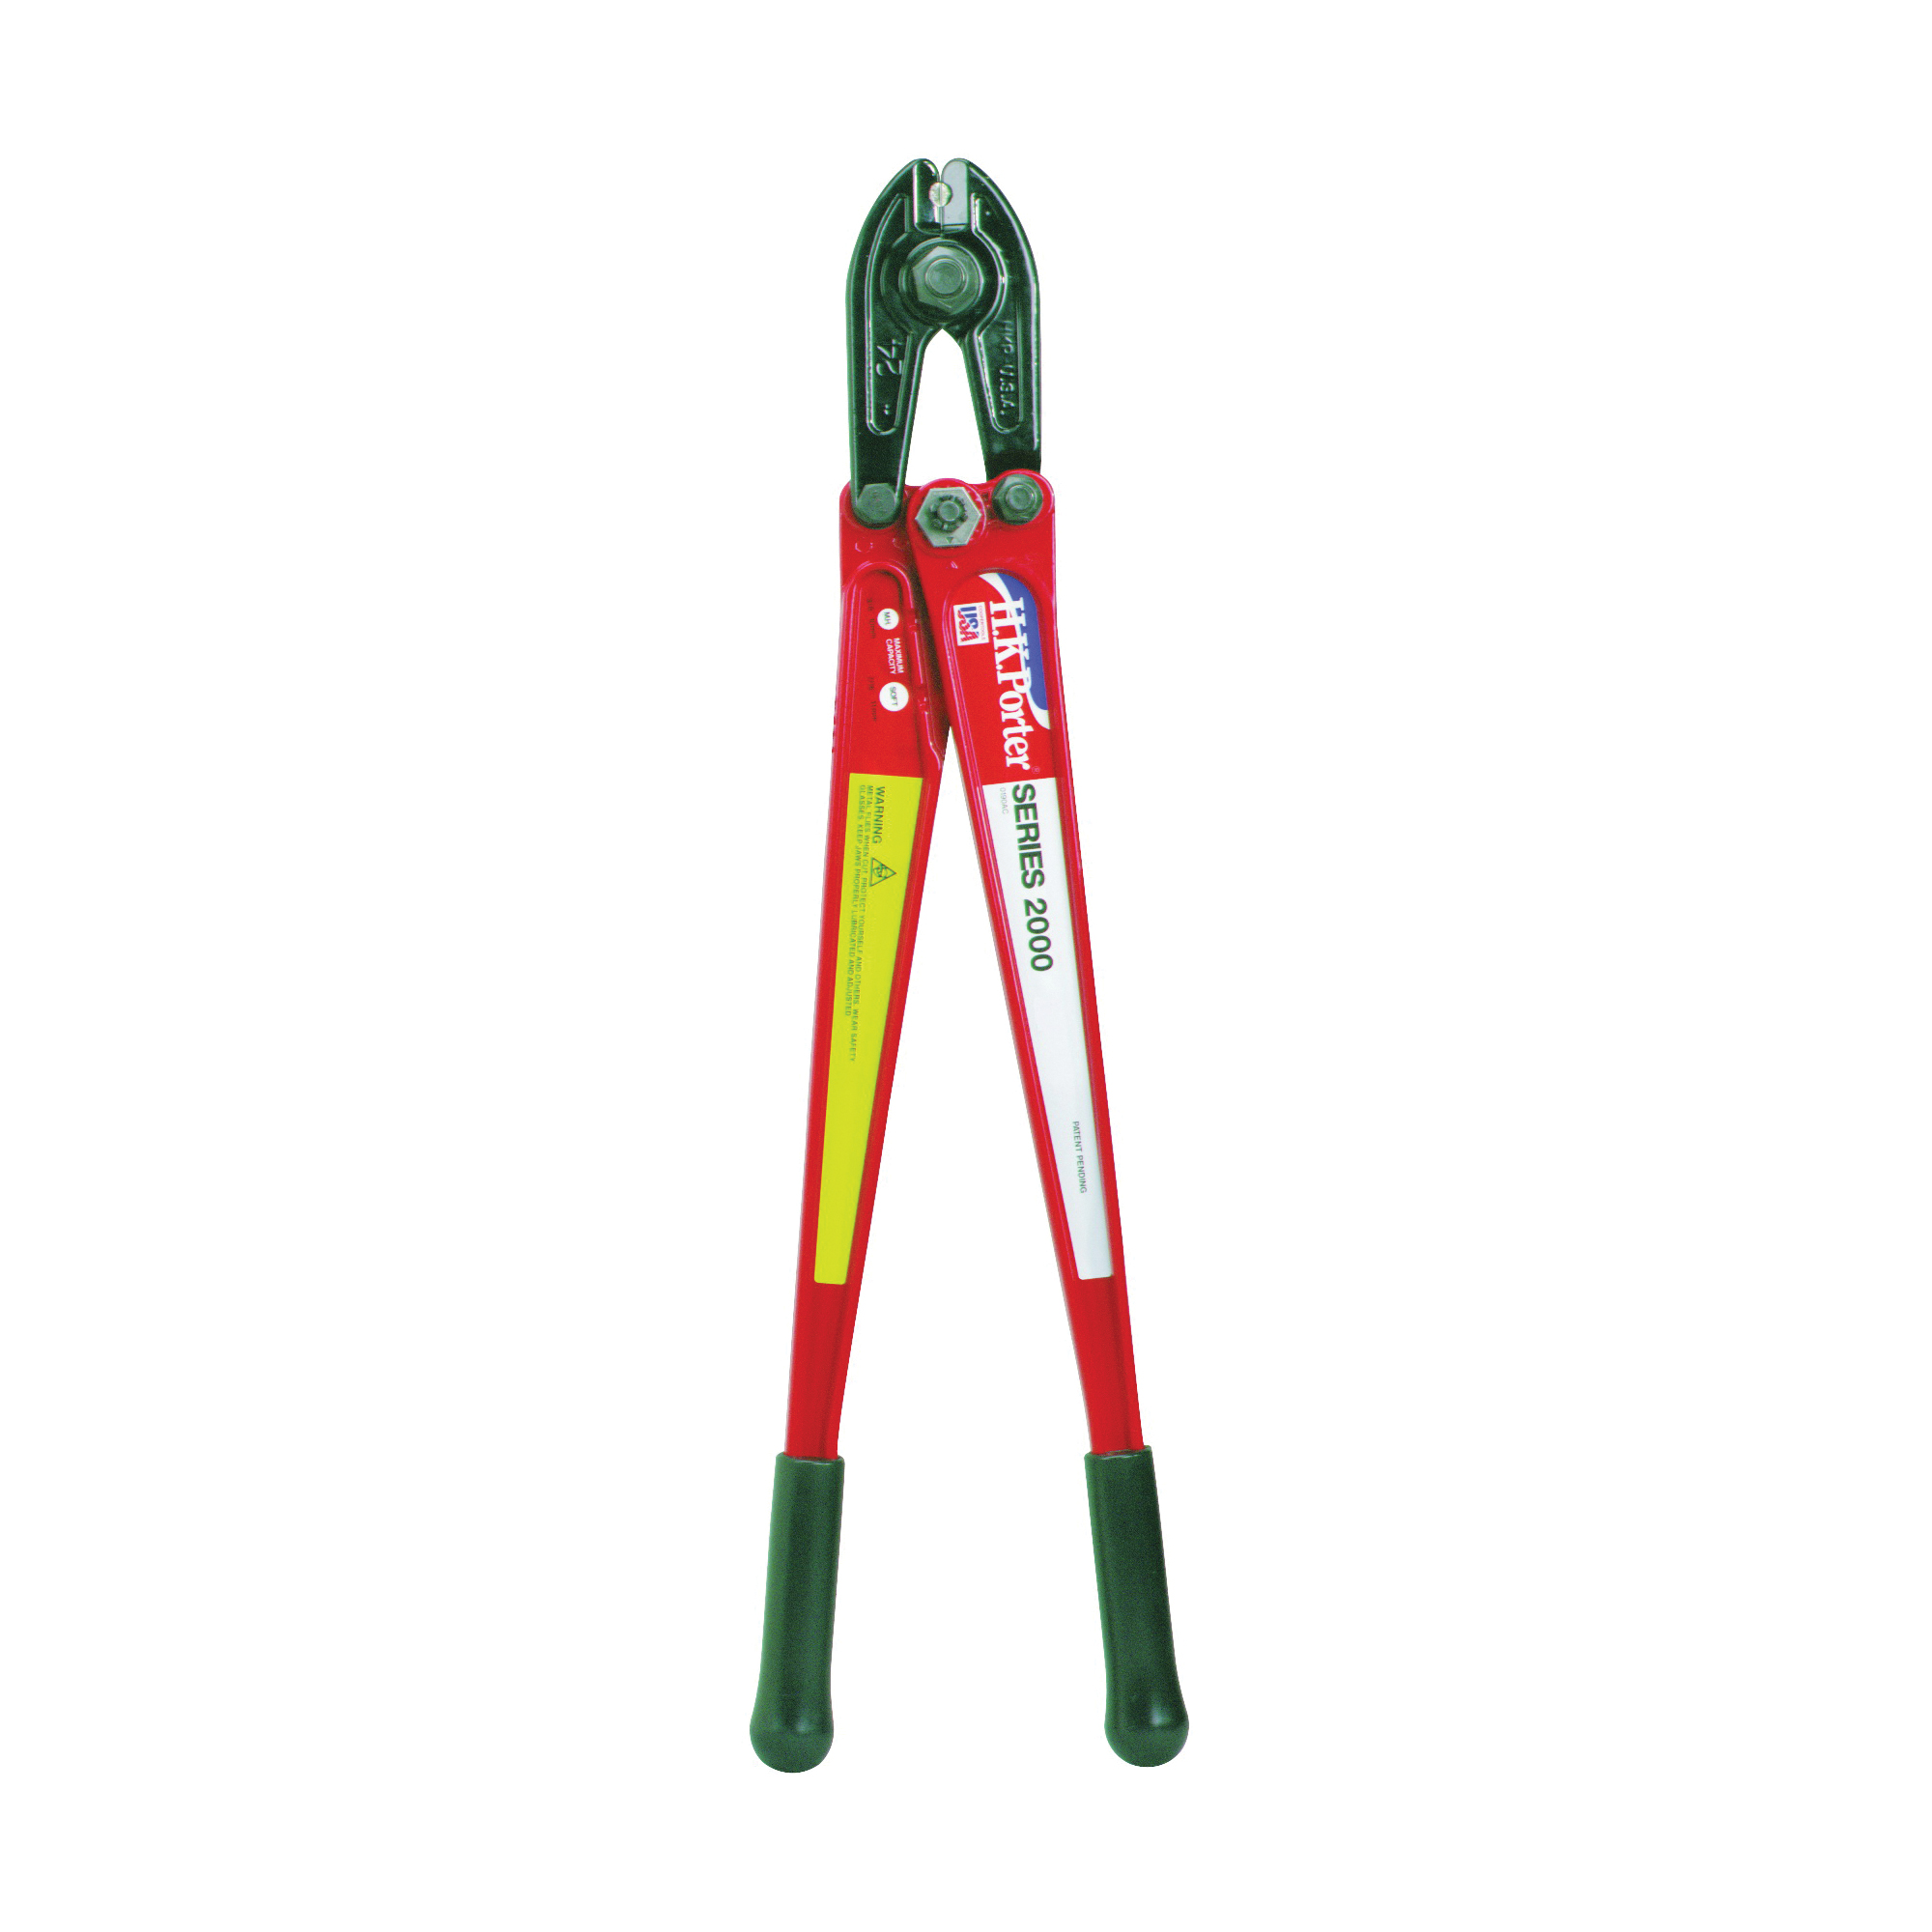 Picture of Crescent HKPorter 0090MCD/0090AC Bolt Cutter, 5/16 in Cutting Capacity, Steel Jaw, 18 in OAL